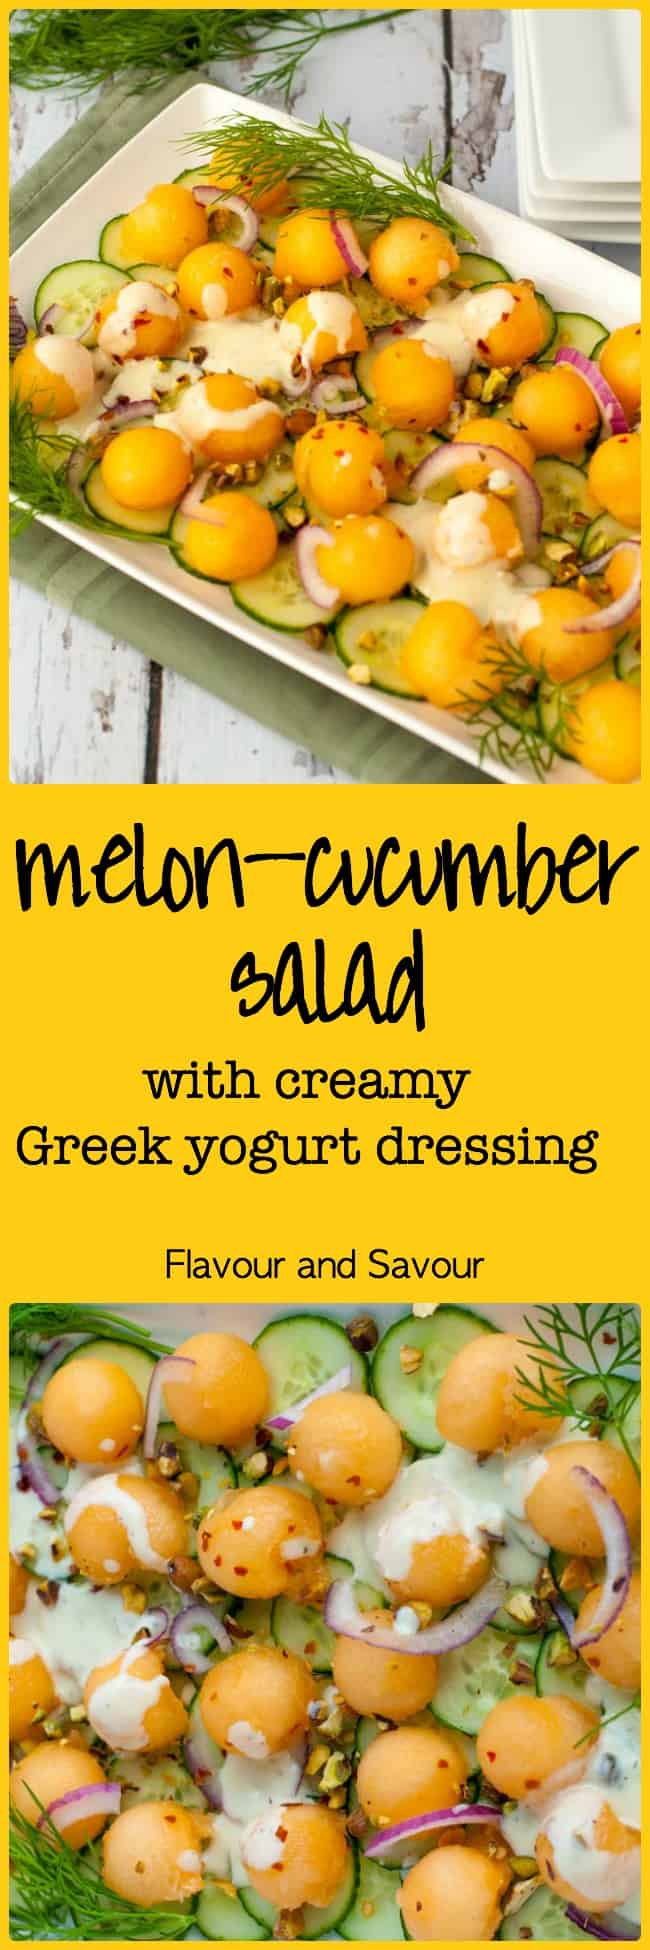 This refreshingly sweet Melon Cucumber Salad features Honey Kiss melon balls and crispy cucumbers with a little zing from red onion and chili flakes. Drizzled with a creamy Greek yogurt dressing, it's an ideal summer salad. |www.flavourandsavour.com